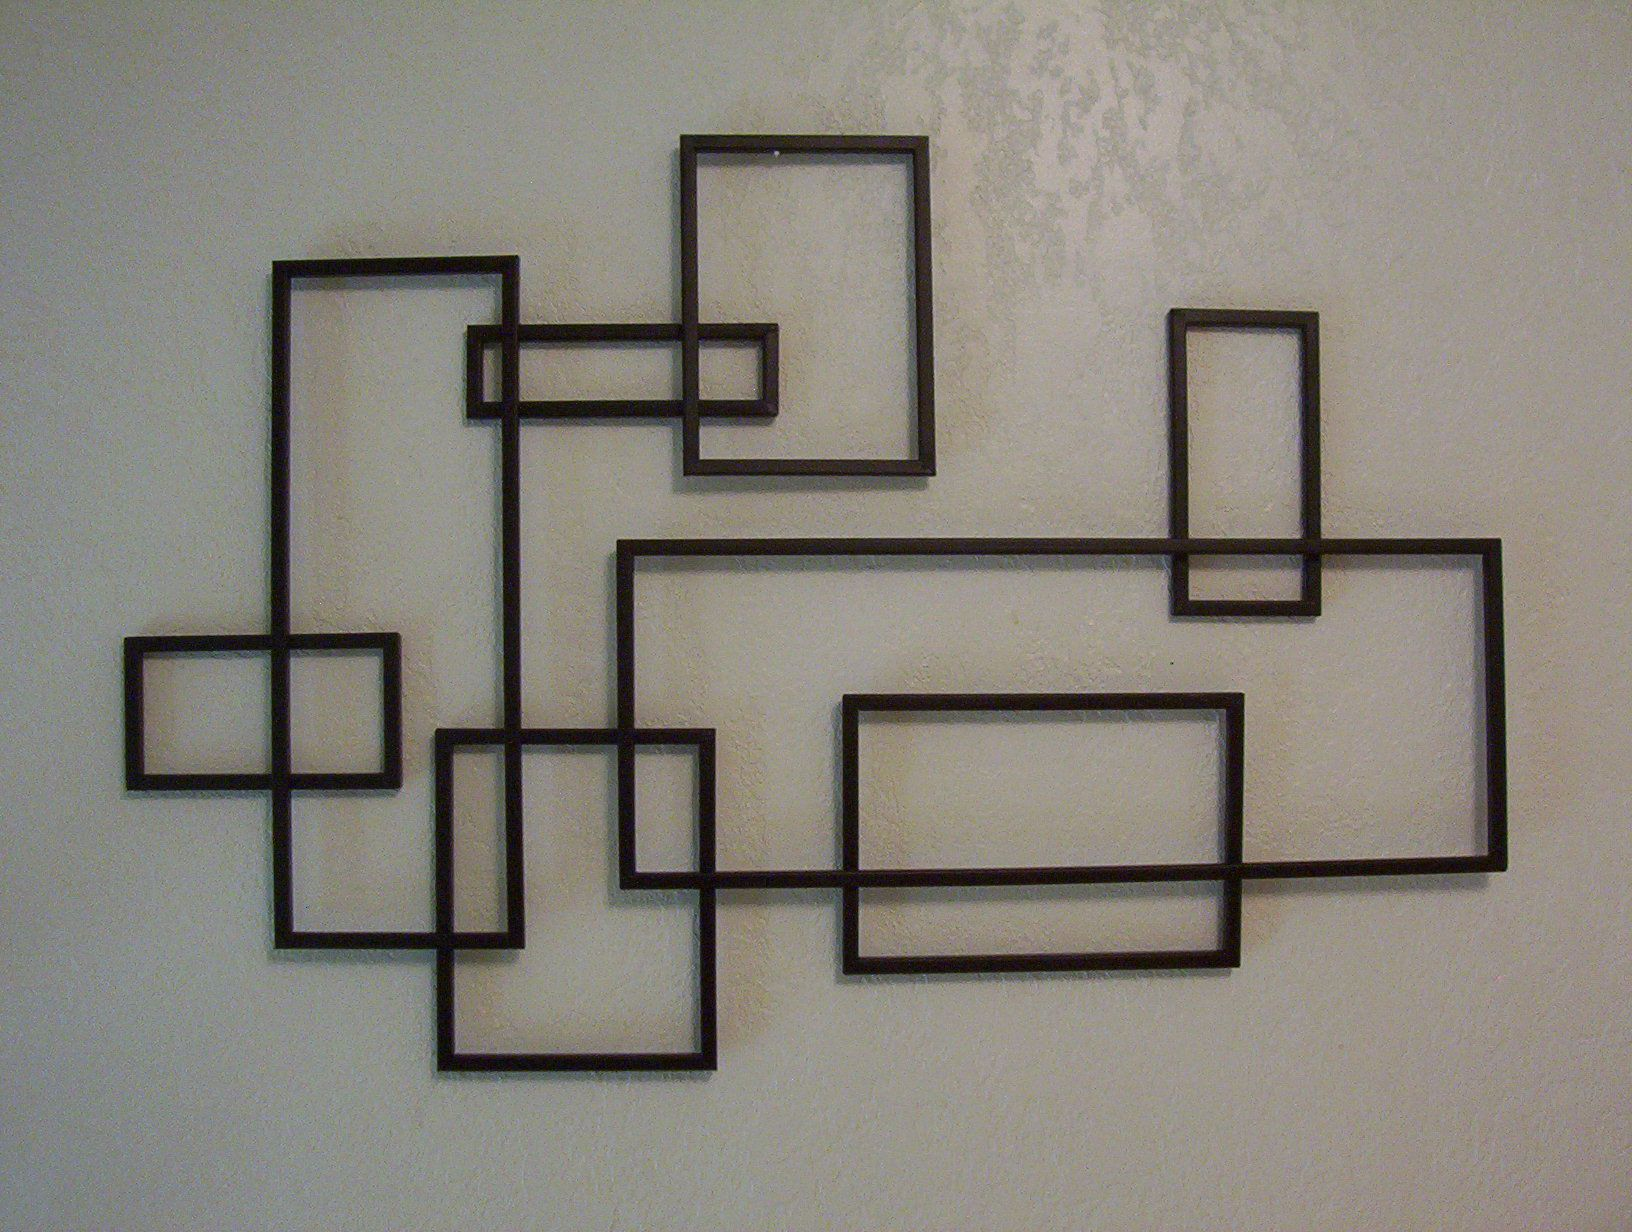 Mid Century Modern De Stijl Style Geometric Metal Wall Sculpture Metal Wall Art Decor Metal Wall Art Wrought Iron Wall Art